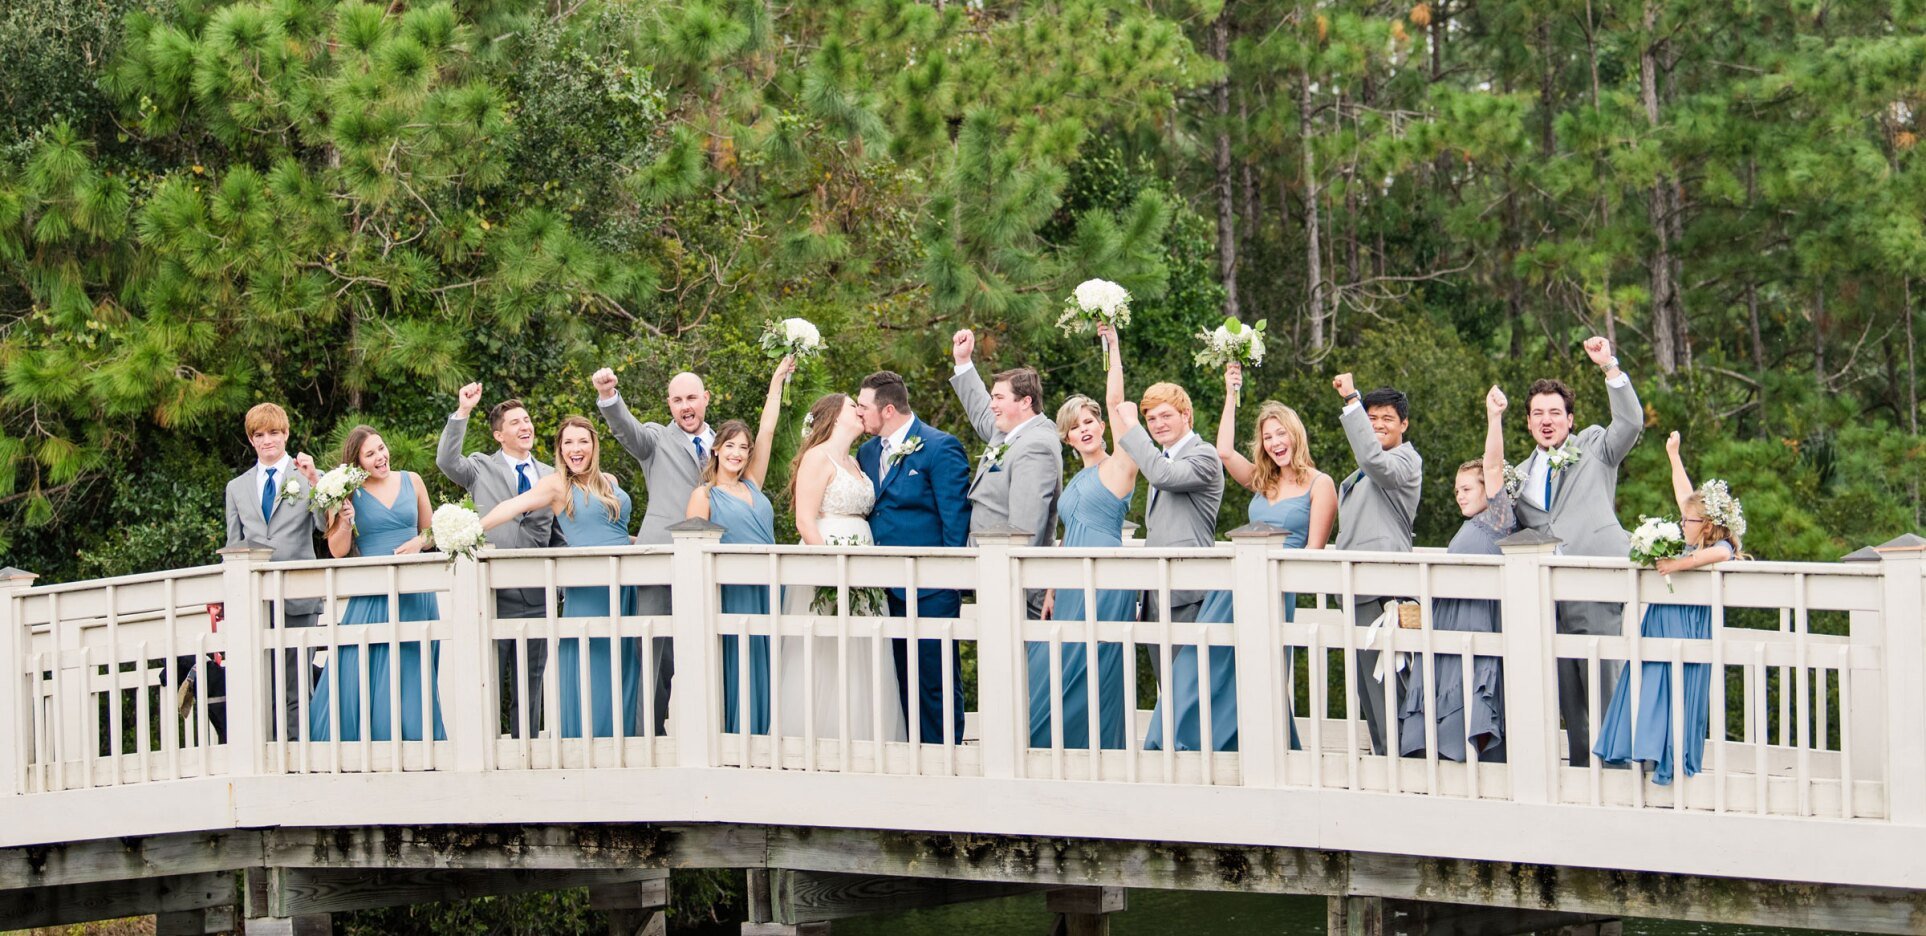 Rudroff Wedding Bridal Party at St Johns golf and country club